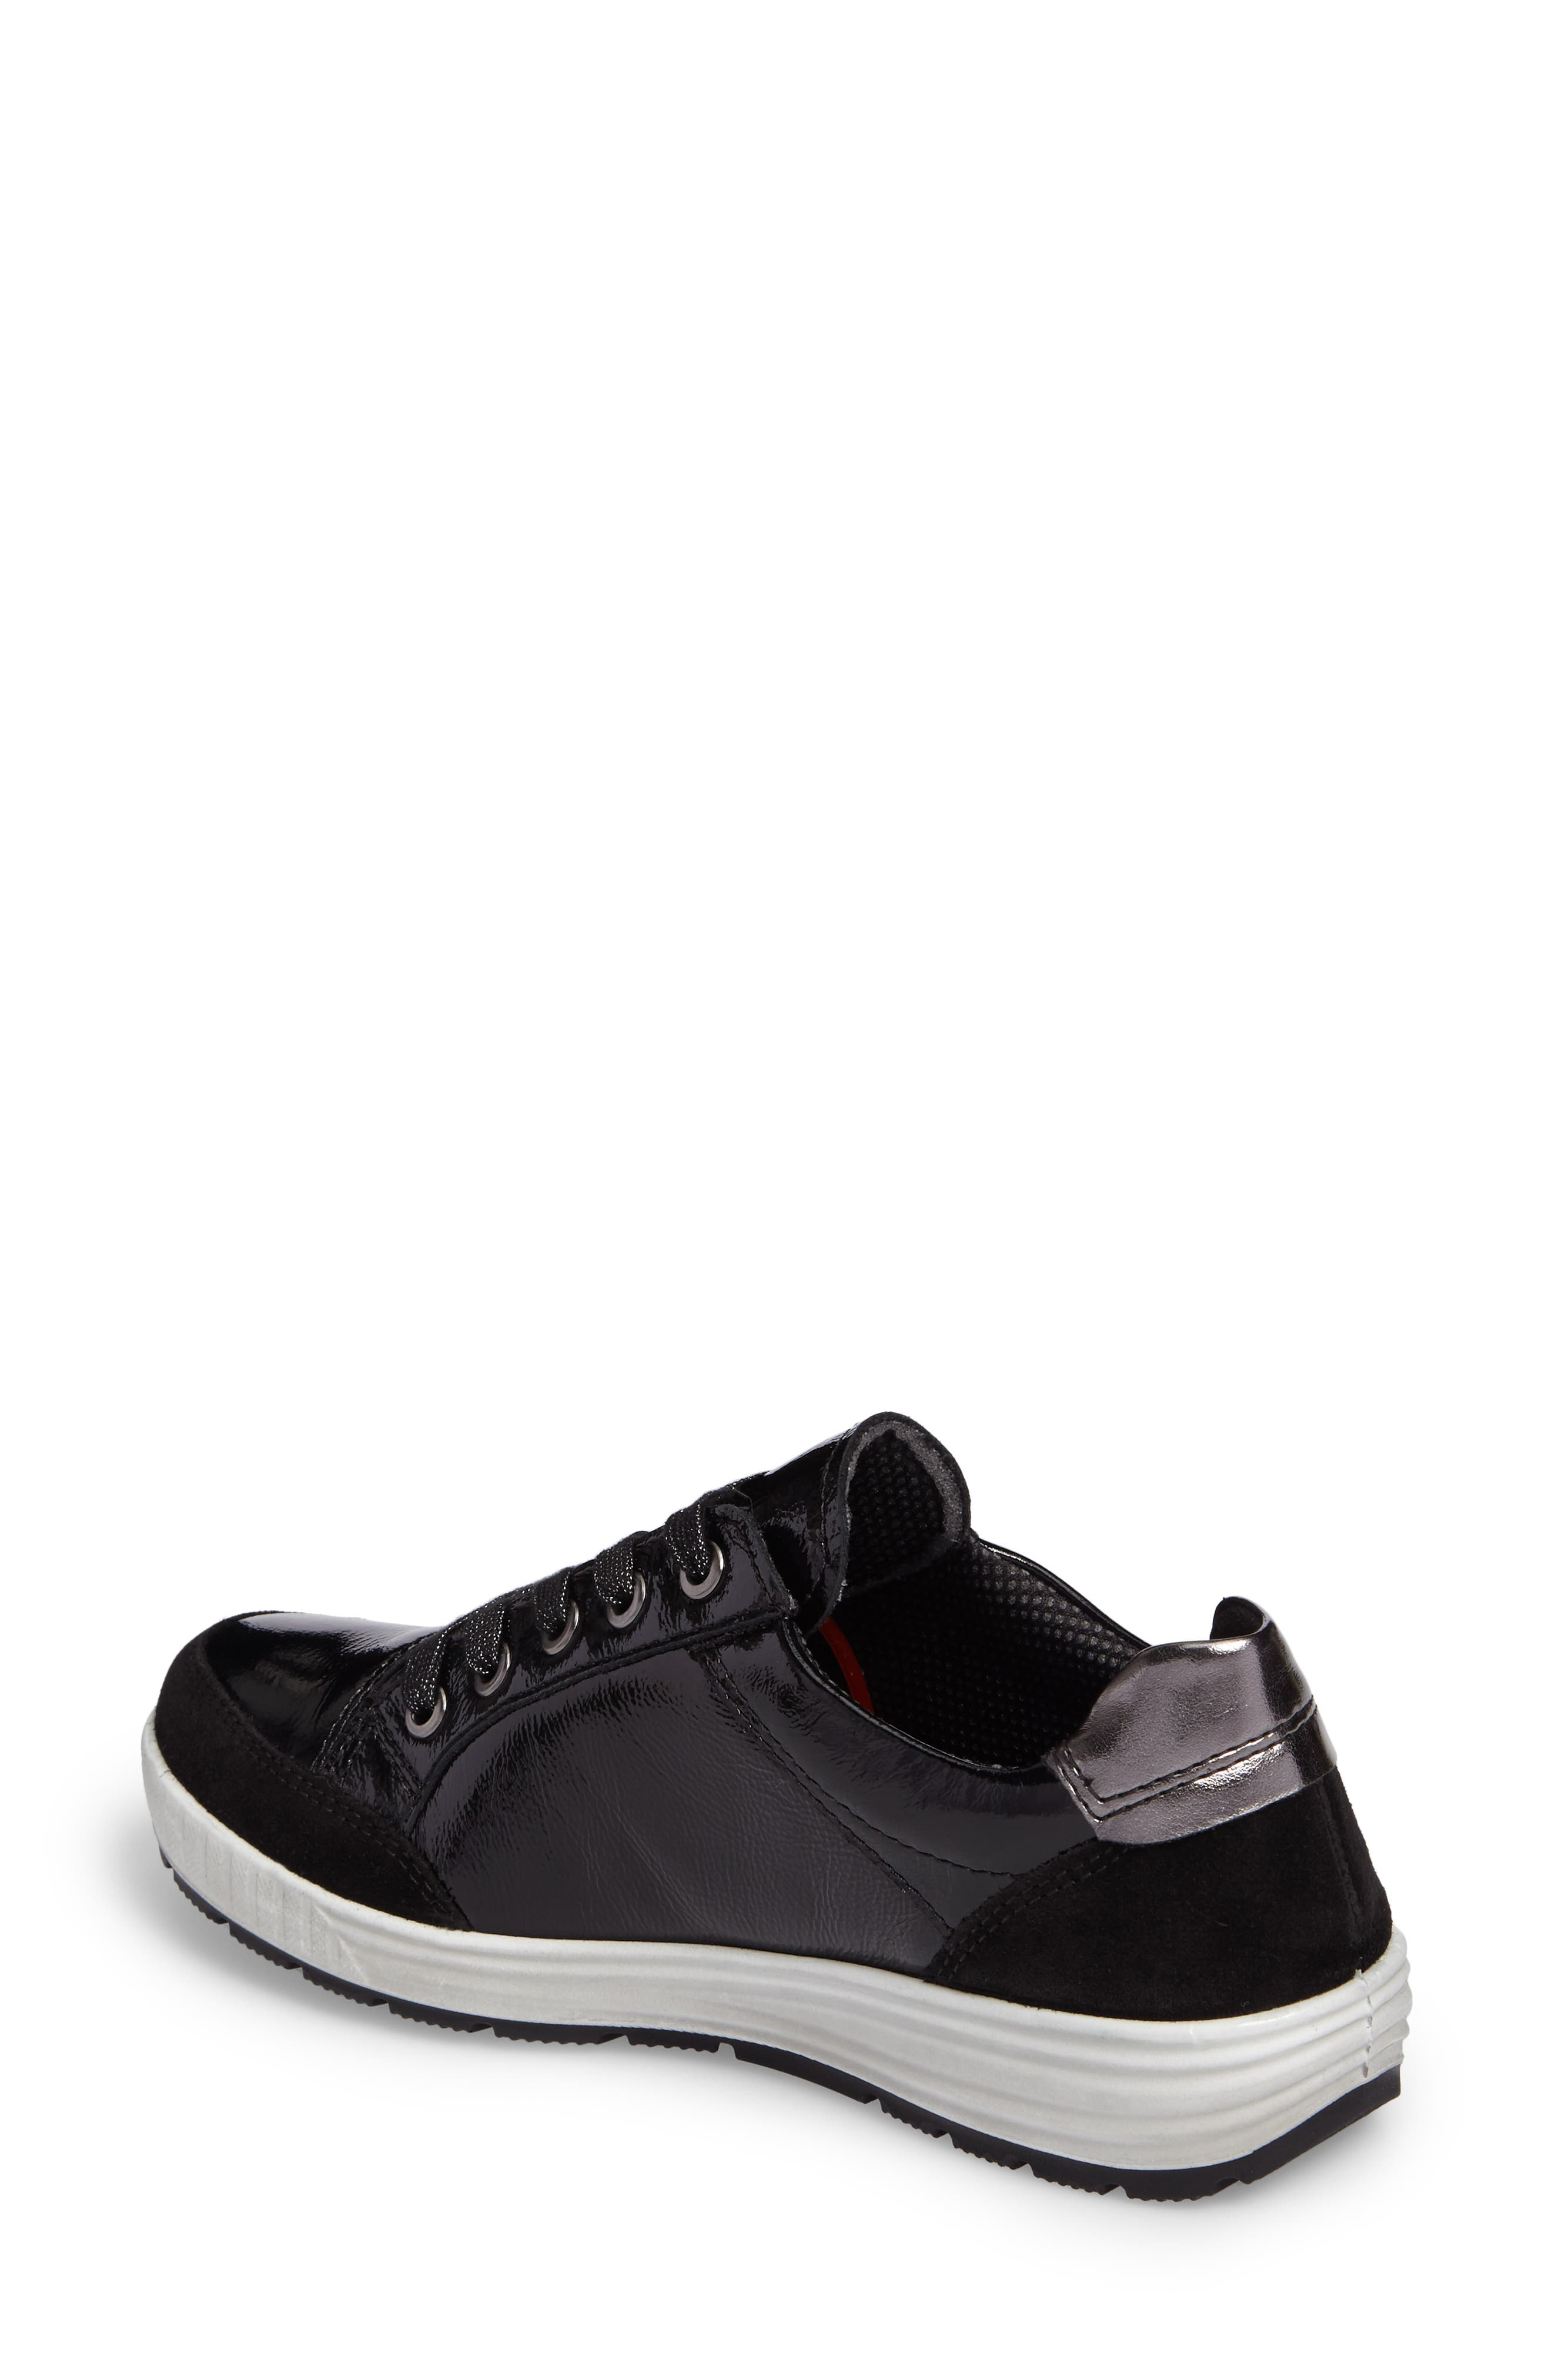 Nicole Sneaker,                             Alternate thumbnail 2, color,                             BLACK LEATHER